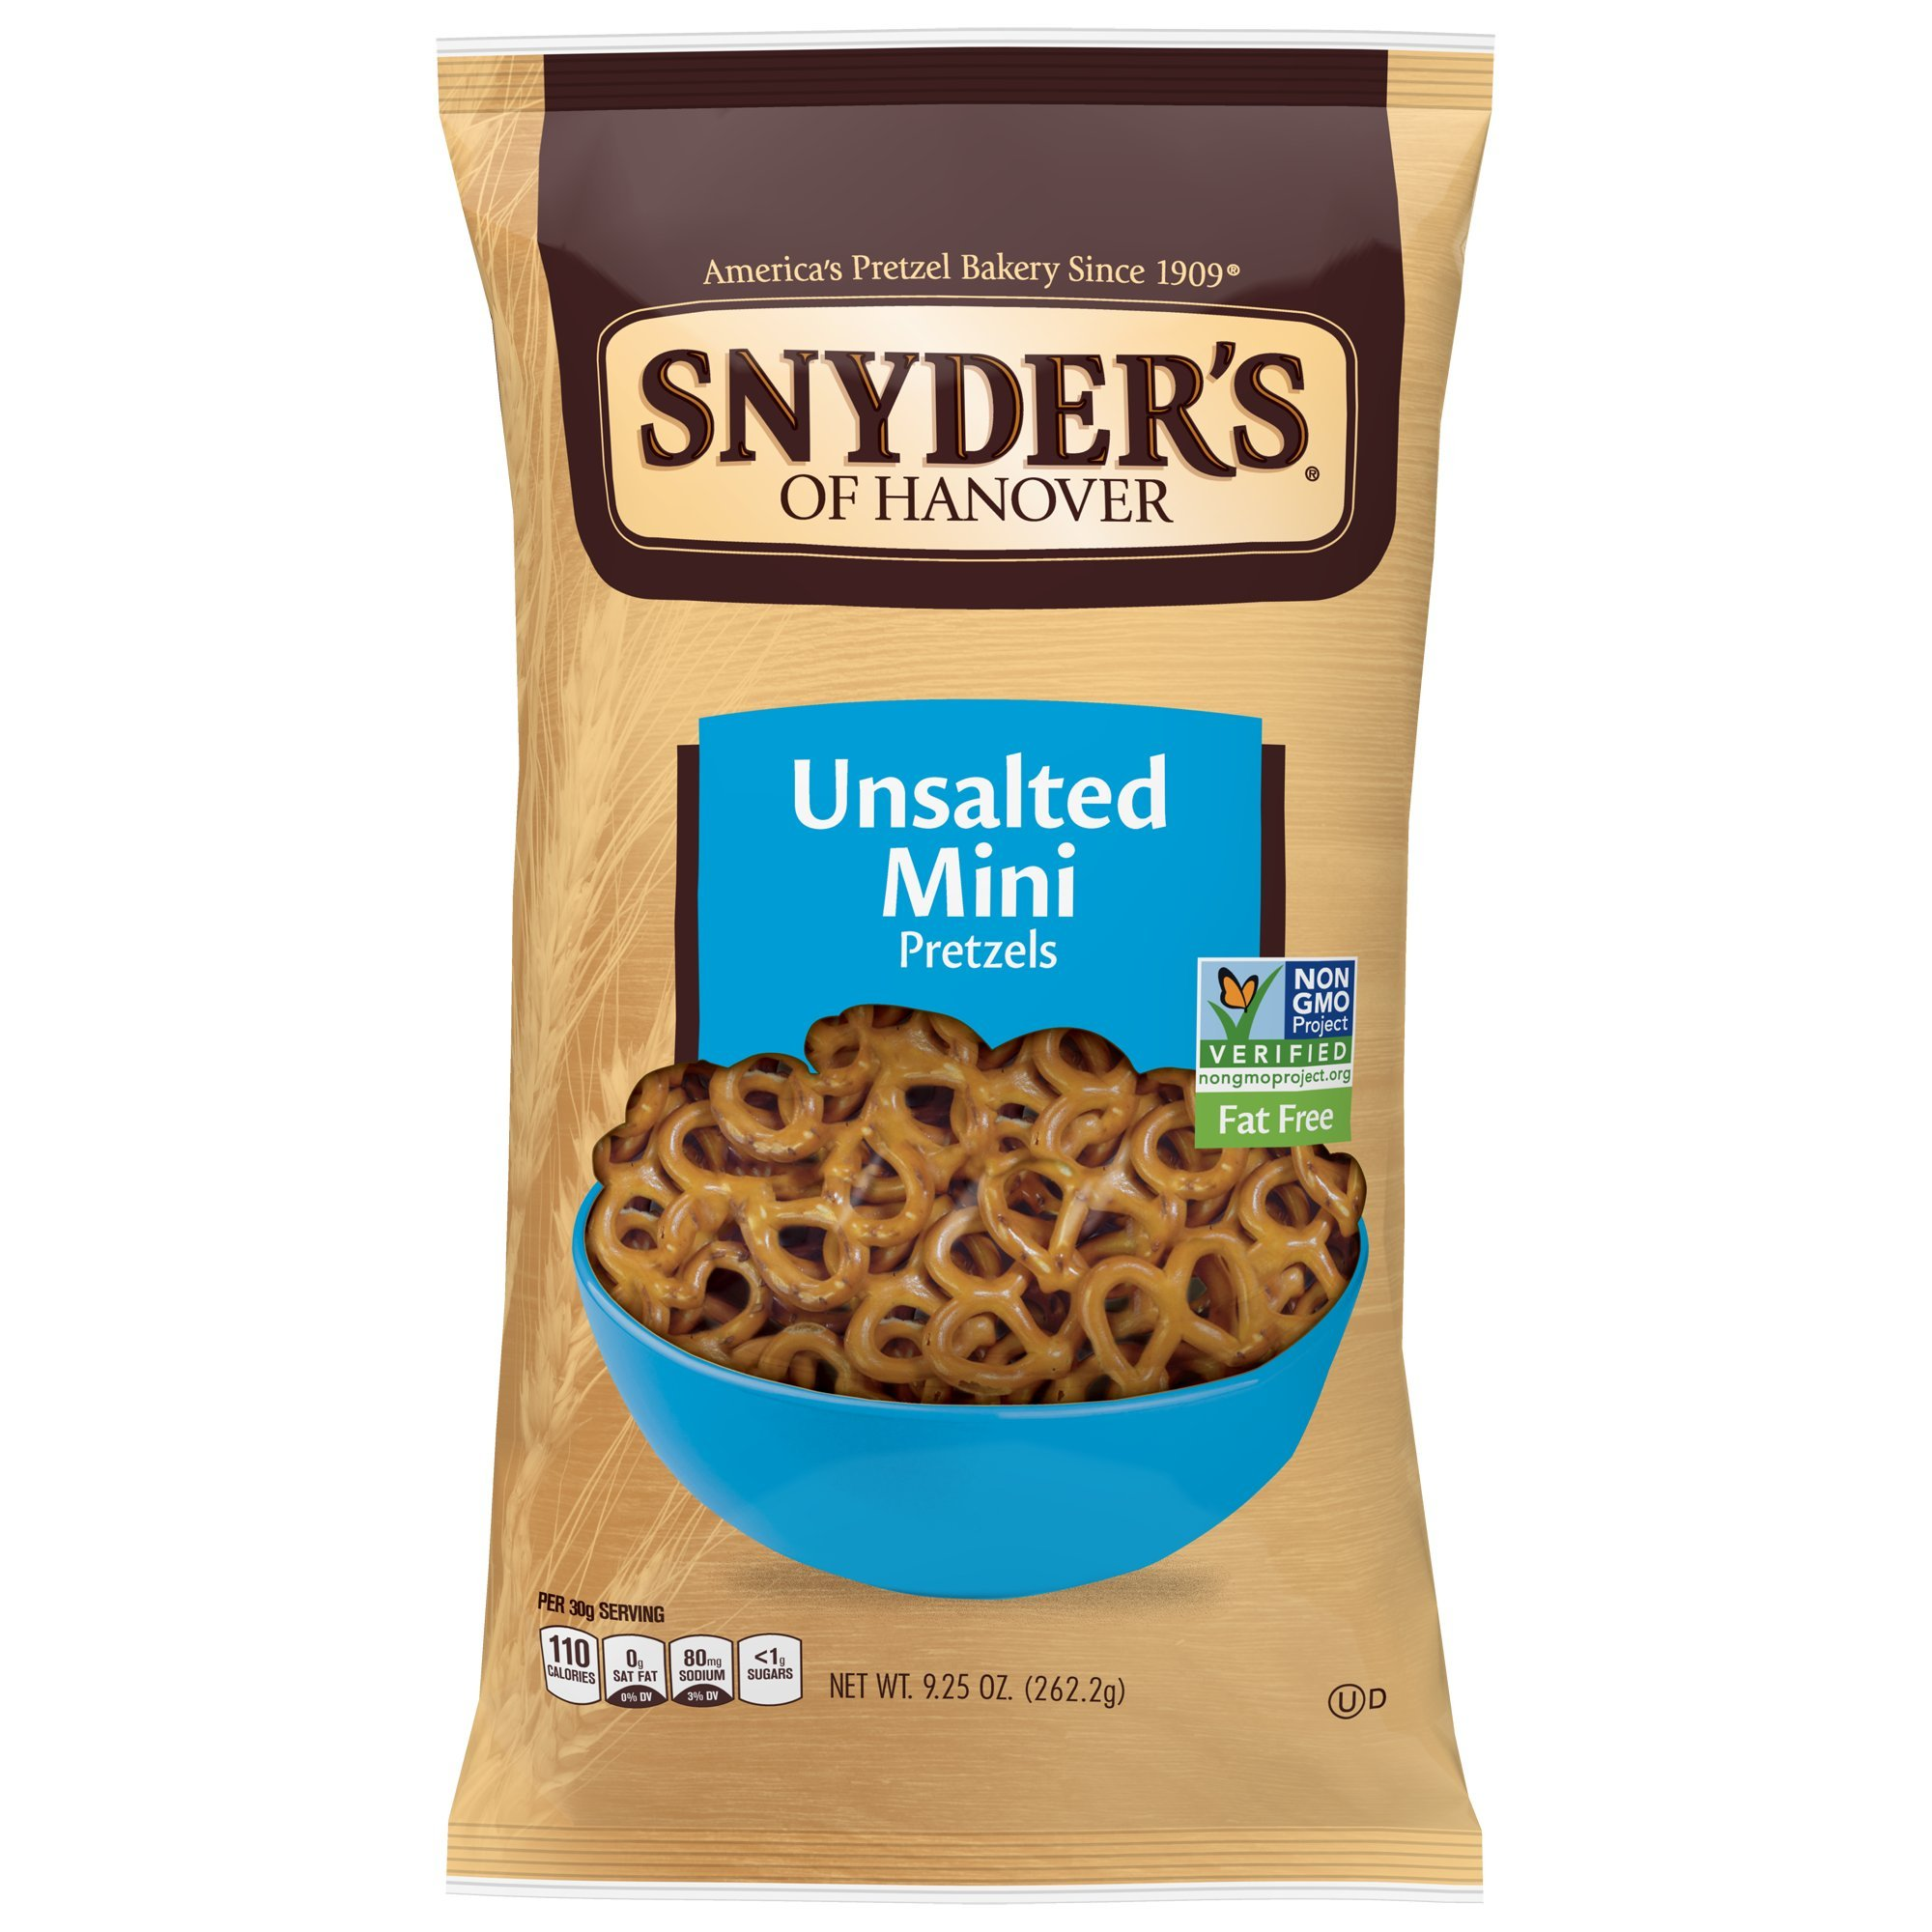 Snyder's of Hanover Mini Pretzels, Unsalted, 9.25 Ounce Bags (Pack of 12) by Snyder's of Hanover (Image #6)